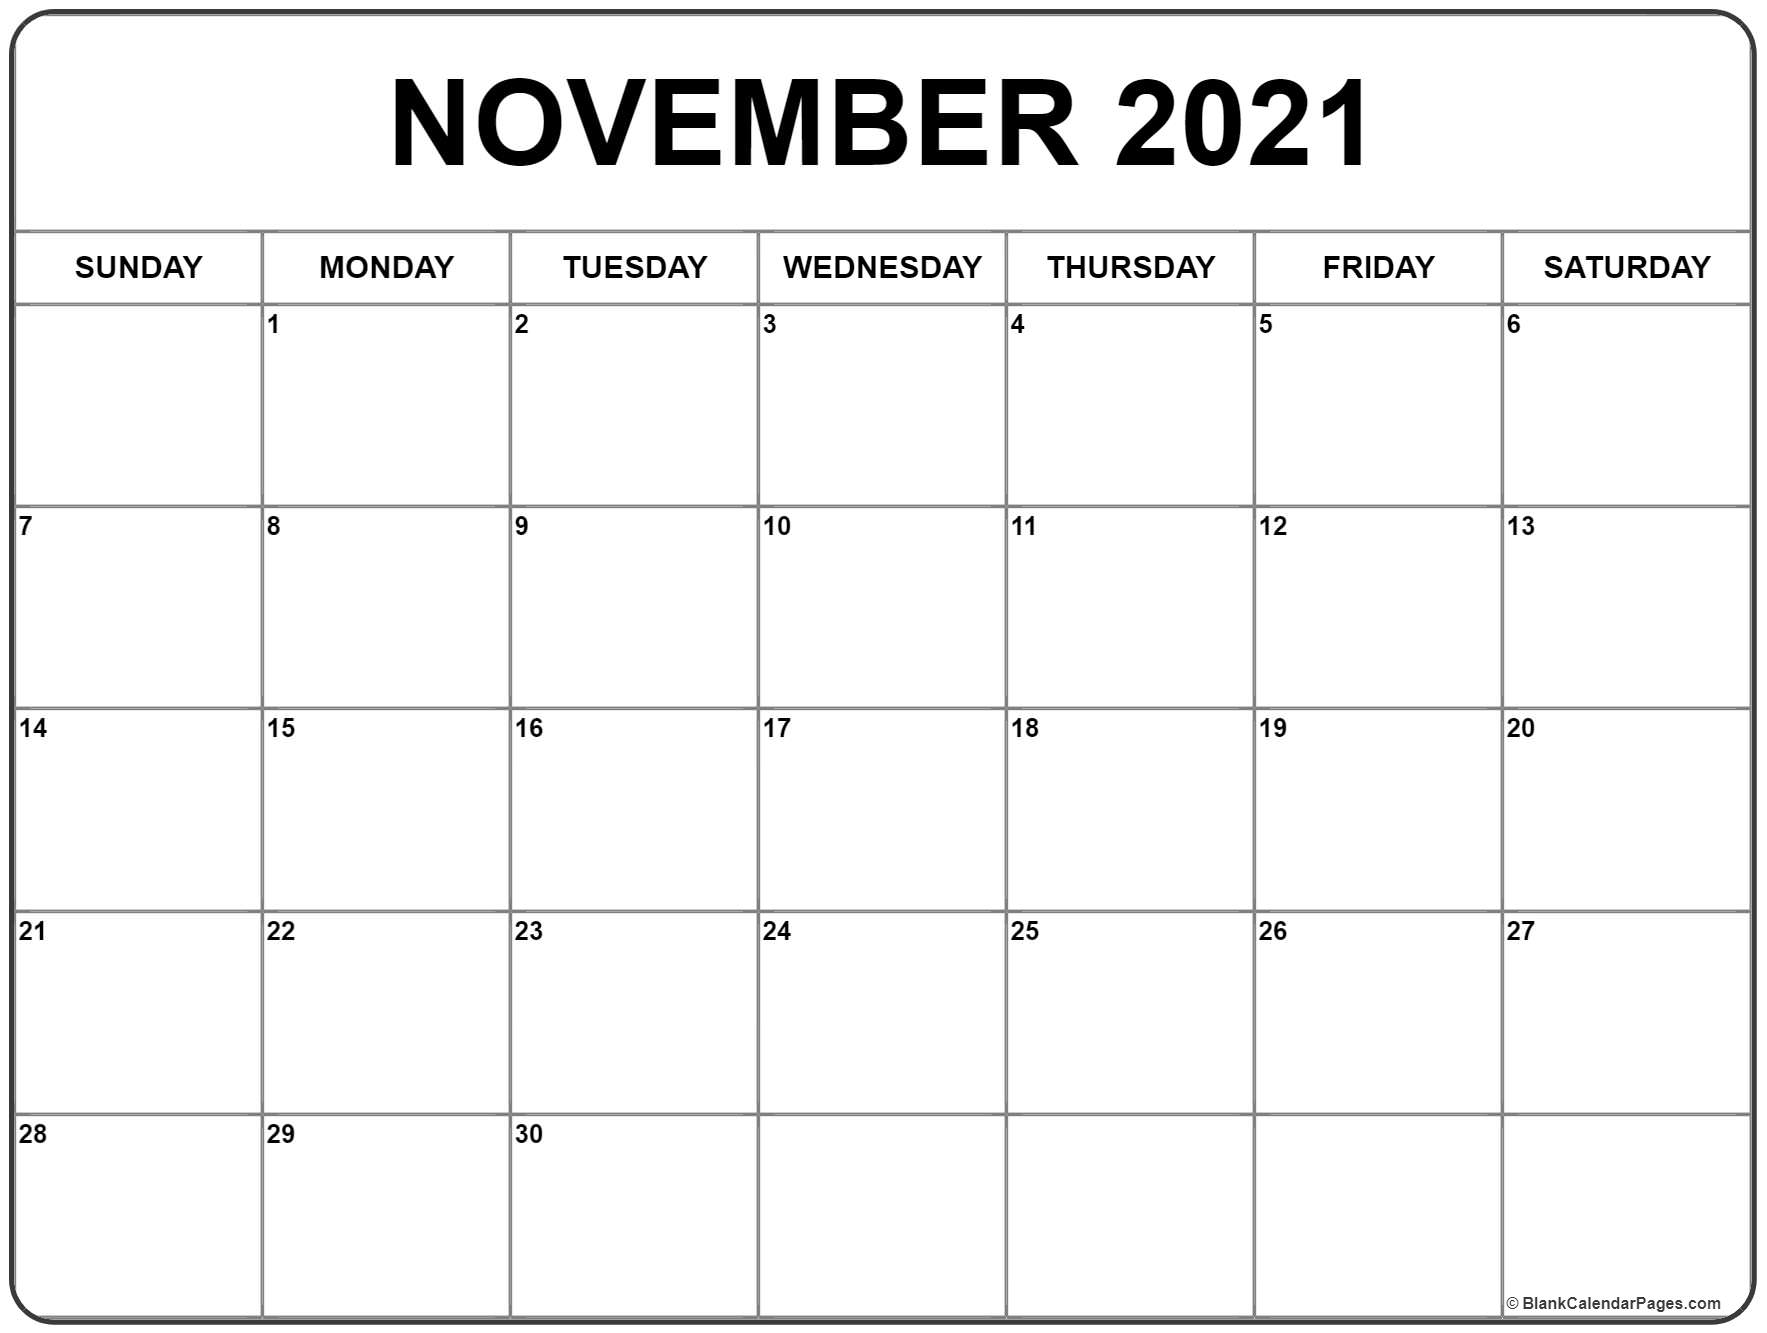 November Blank Calendar 2020 November 2020 calendar | free printable monthly calendars